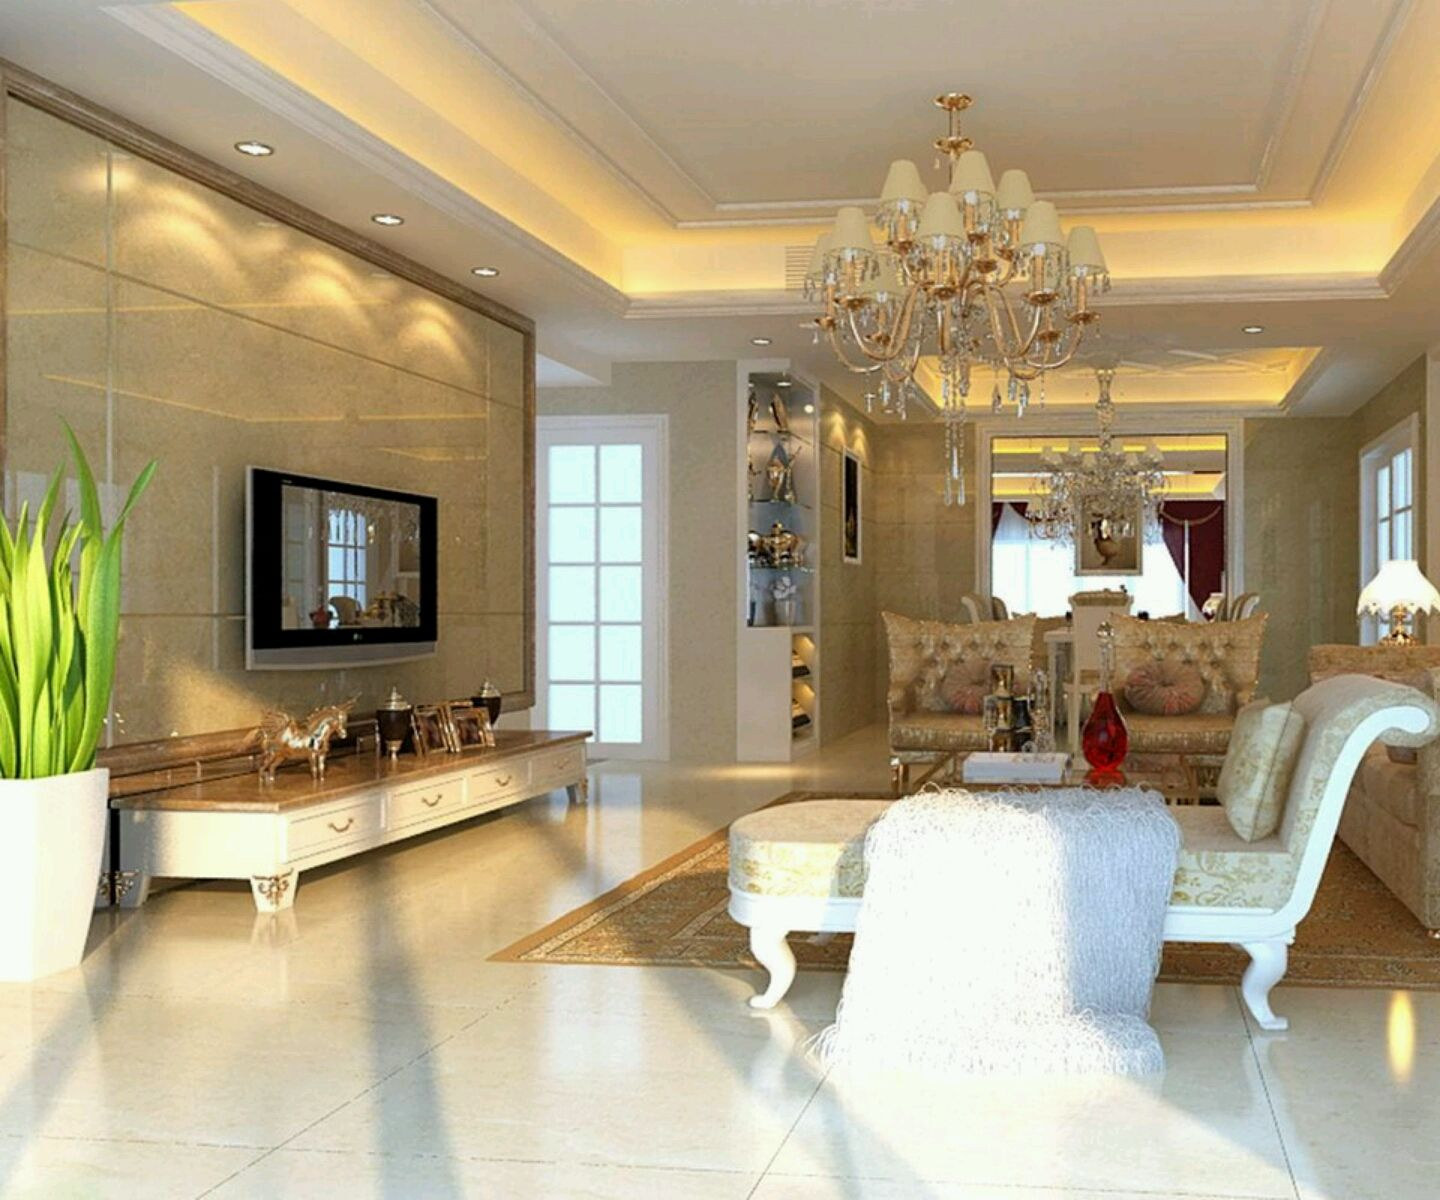 Luxury Living Room Interior Design Designs Latest Luxury Homes Luxury Interior Design Living Room Interior Decorating Living Room Luxury Homes Interior